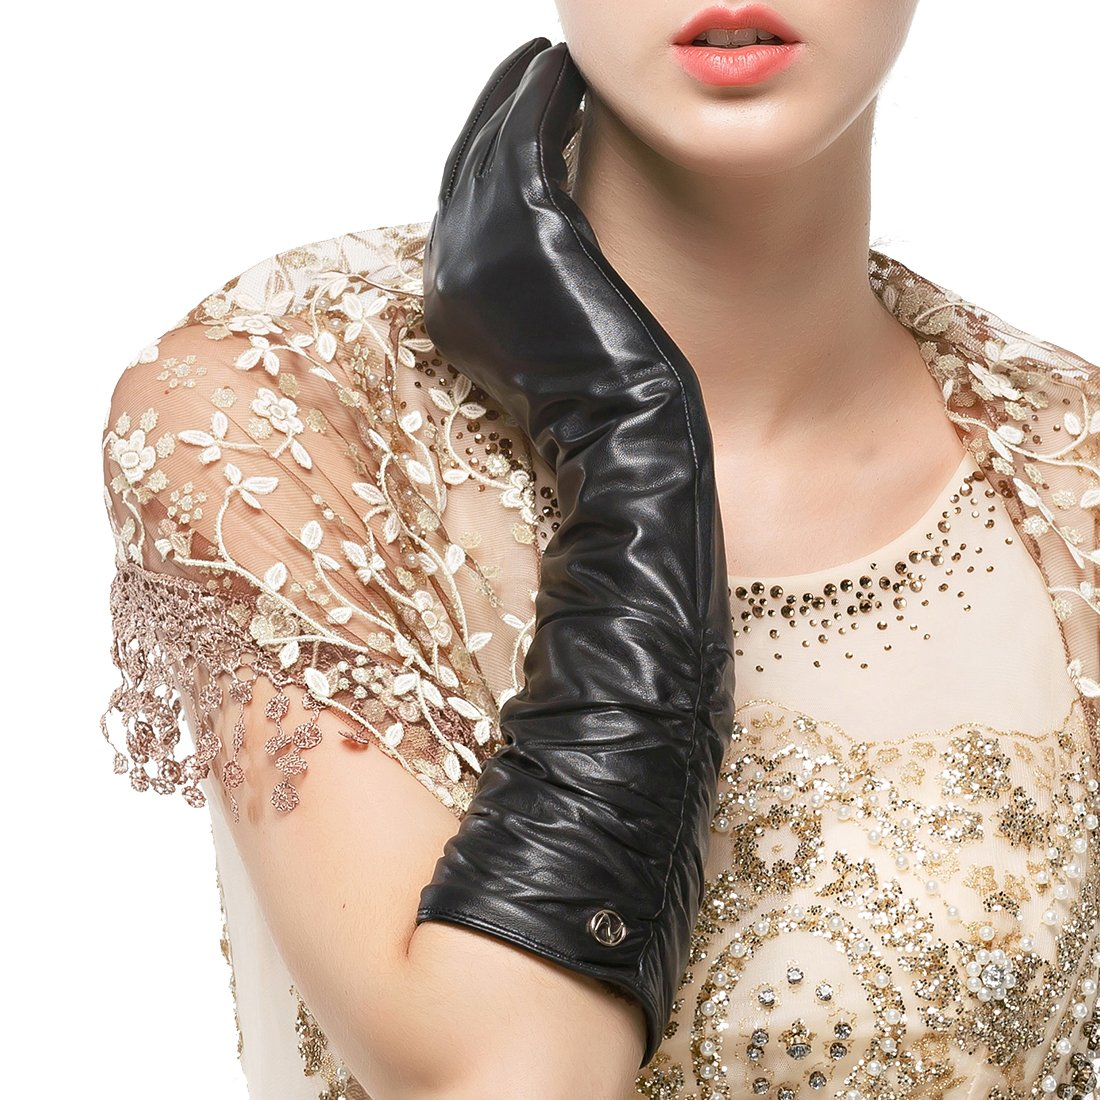 Nappaglo Women's Winter Long Leather Gloves Genuine Nappa Leather Touchscreen Ruched Elbow Party Mittens (XL (Palm Girth:7.9''), Black (Touchscreen))